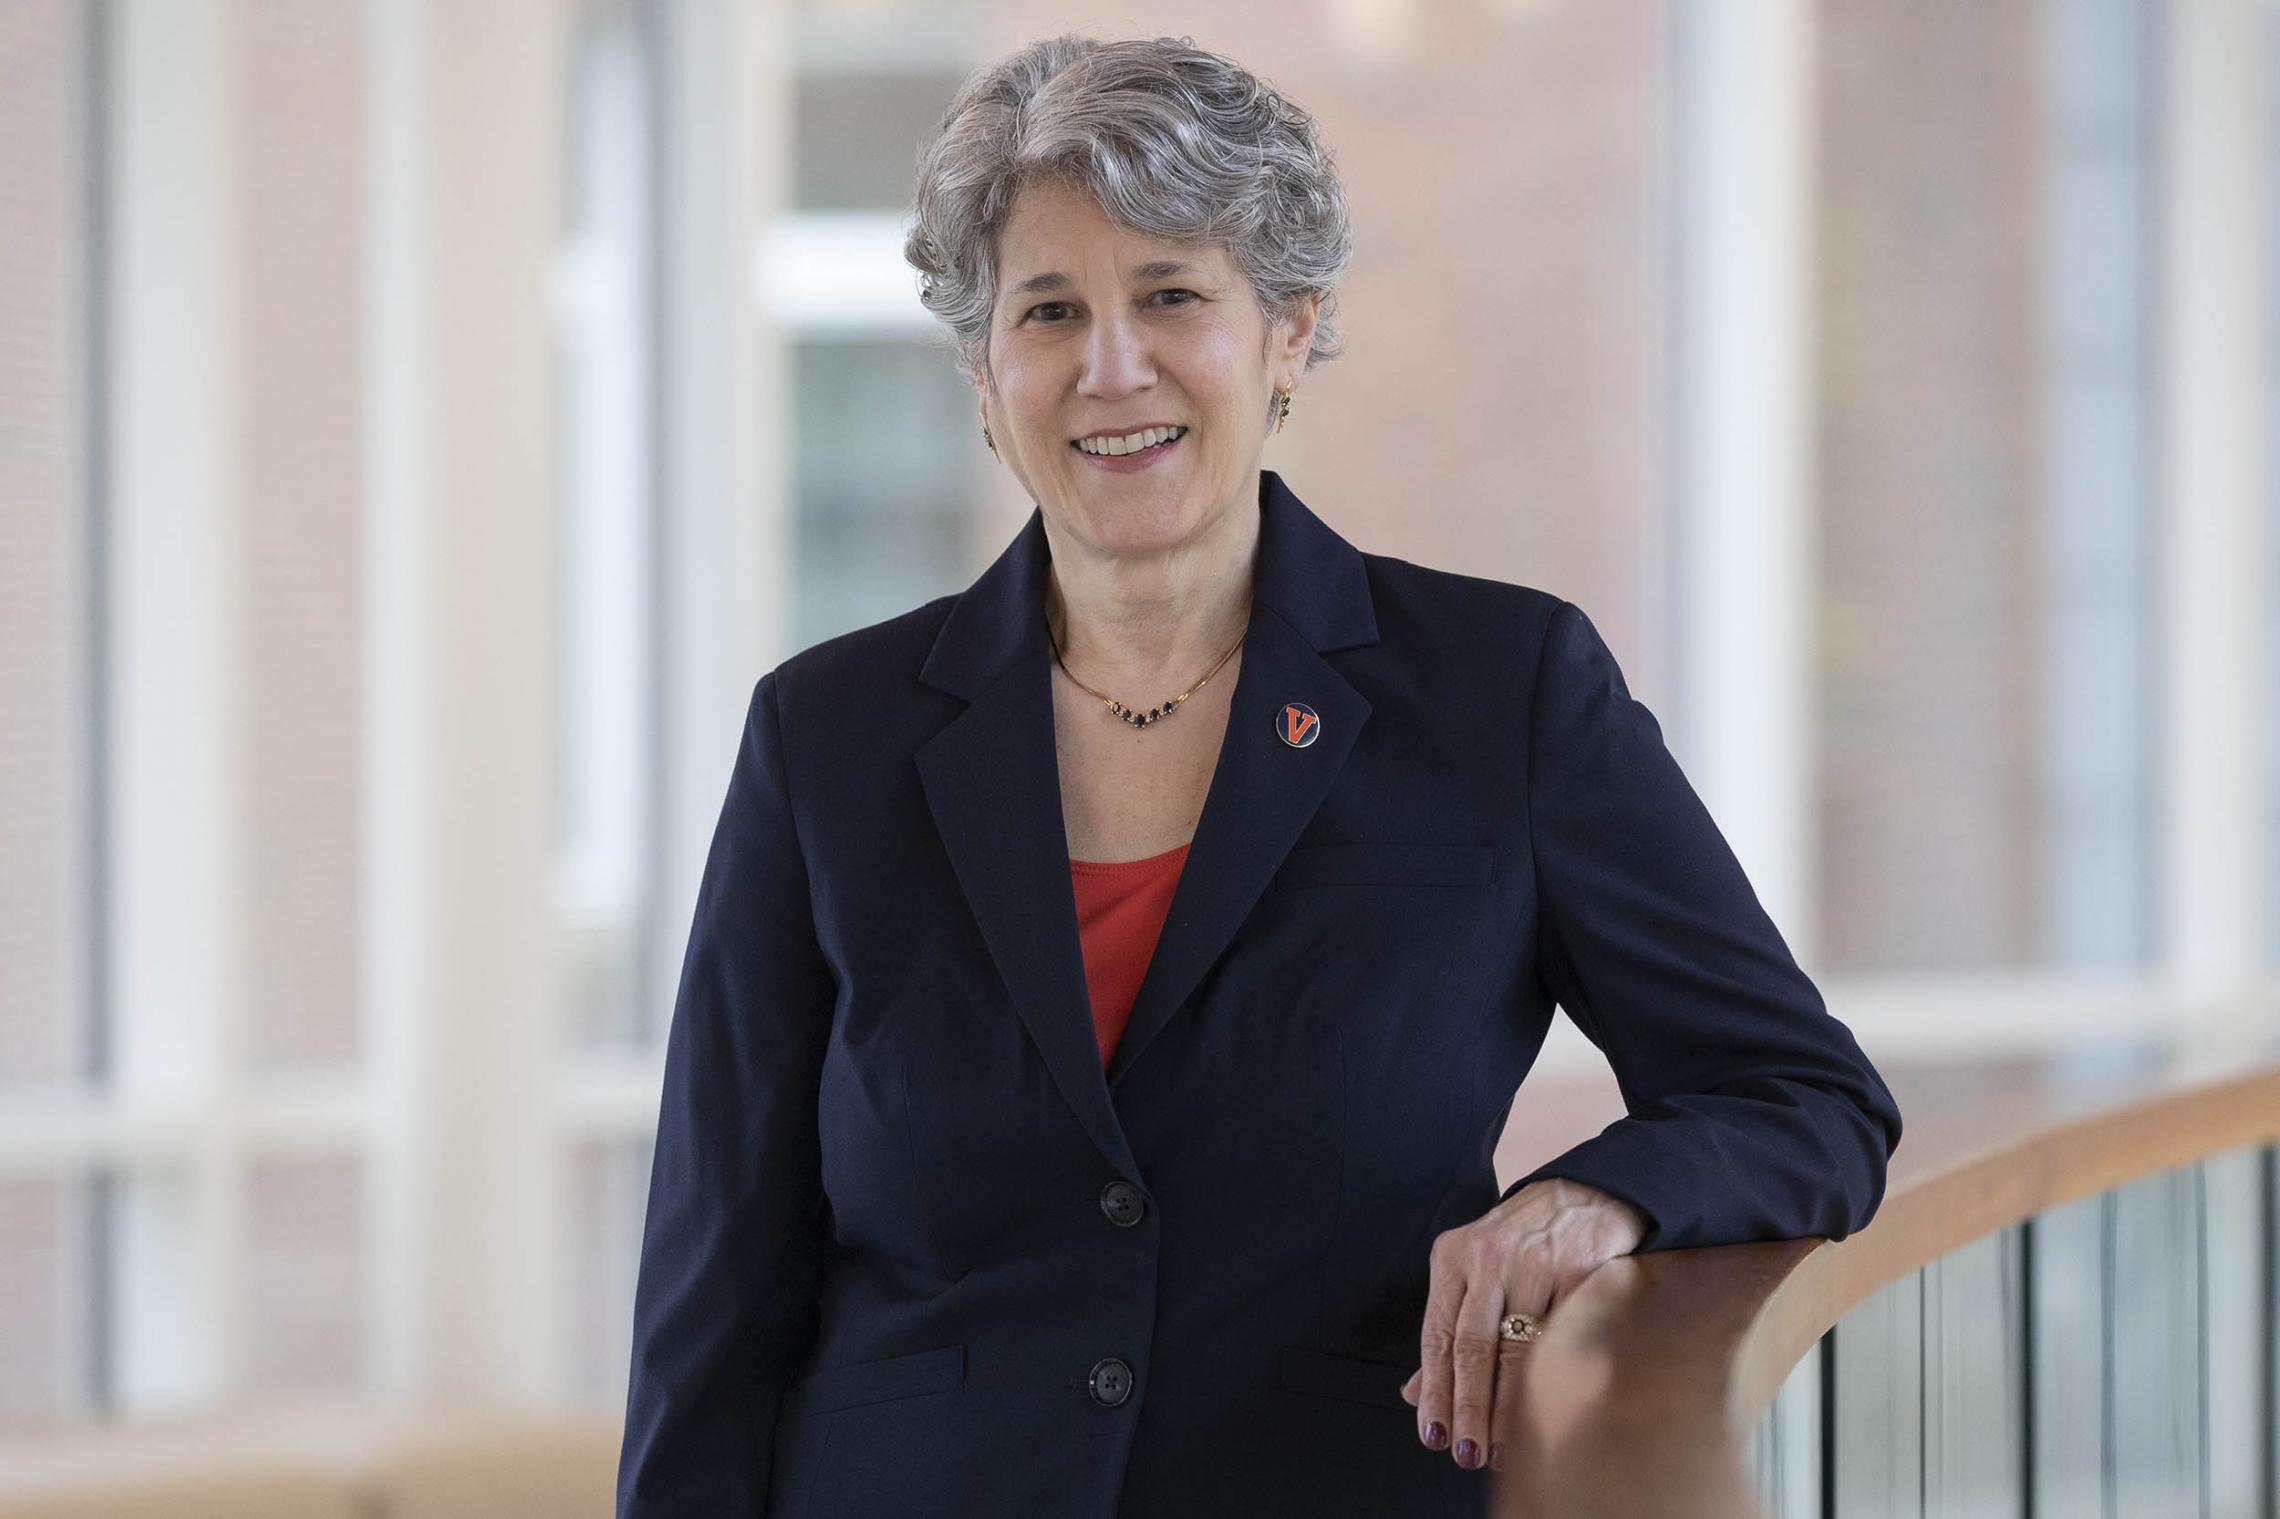 Pam Cipriano, a fellow of the American Academy of Nursing, served for nine years as the chief clinical officer/chief nursing officer in the UVA Health System.